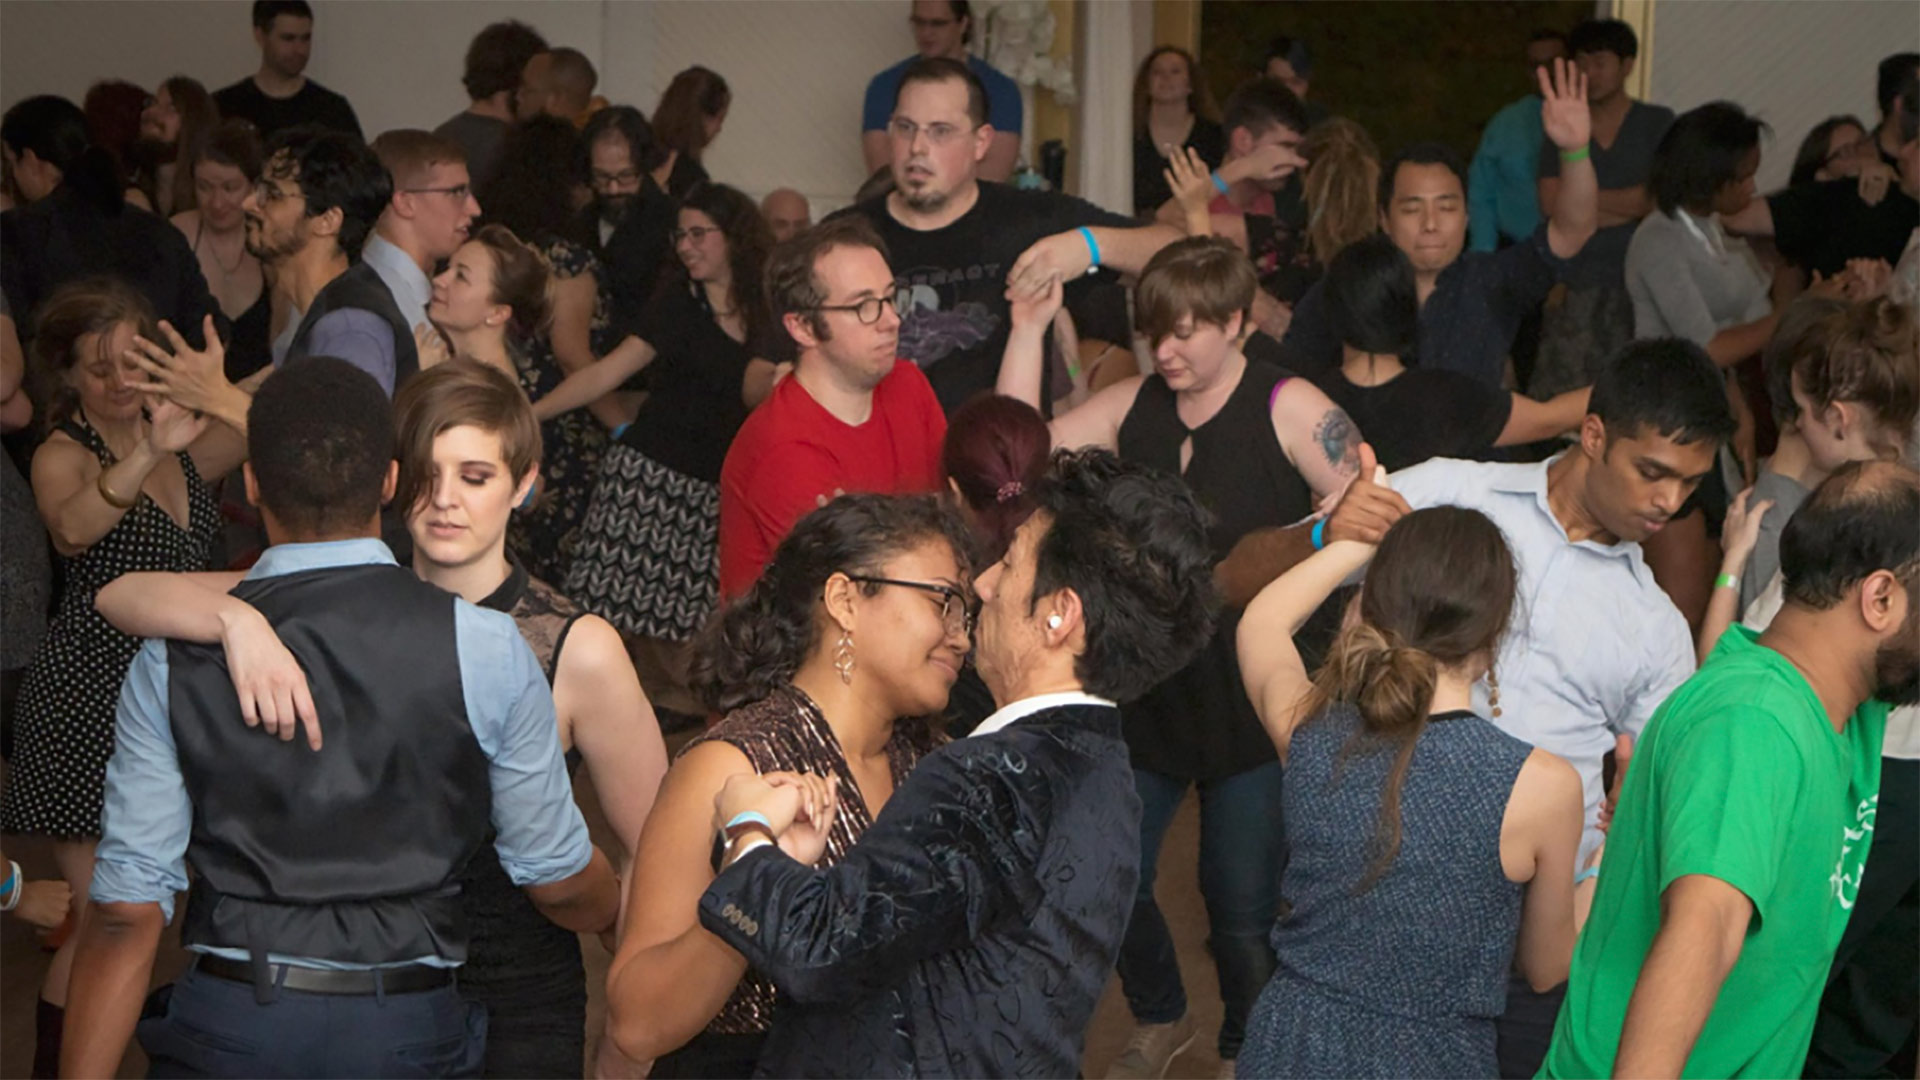 Modern day photo of people blues dancing